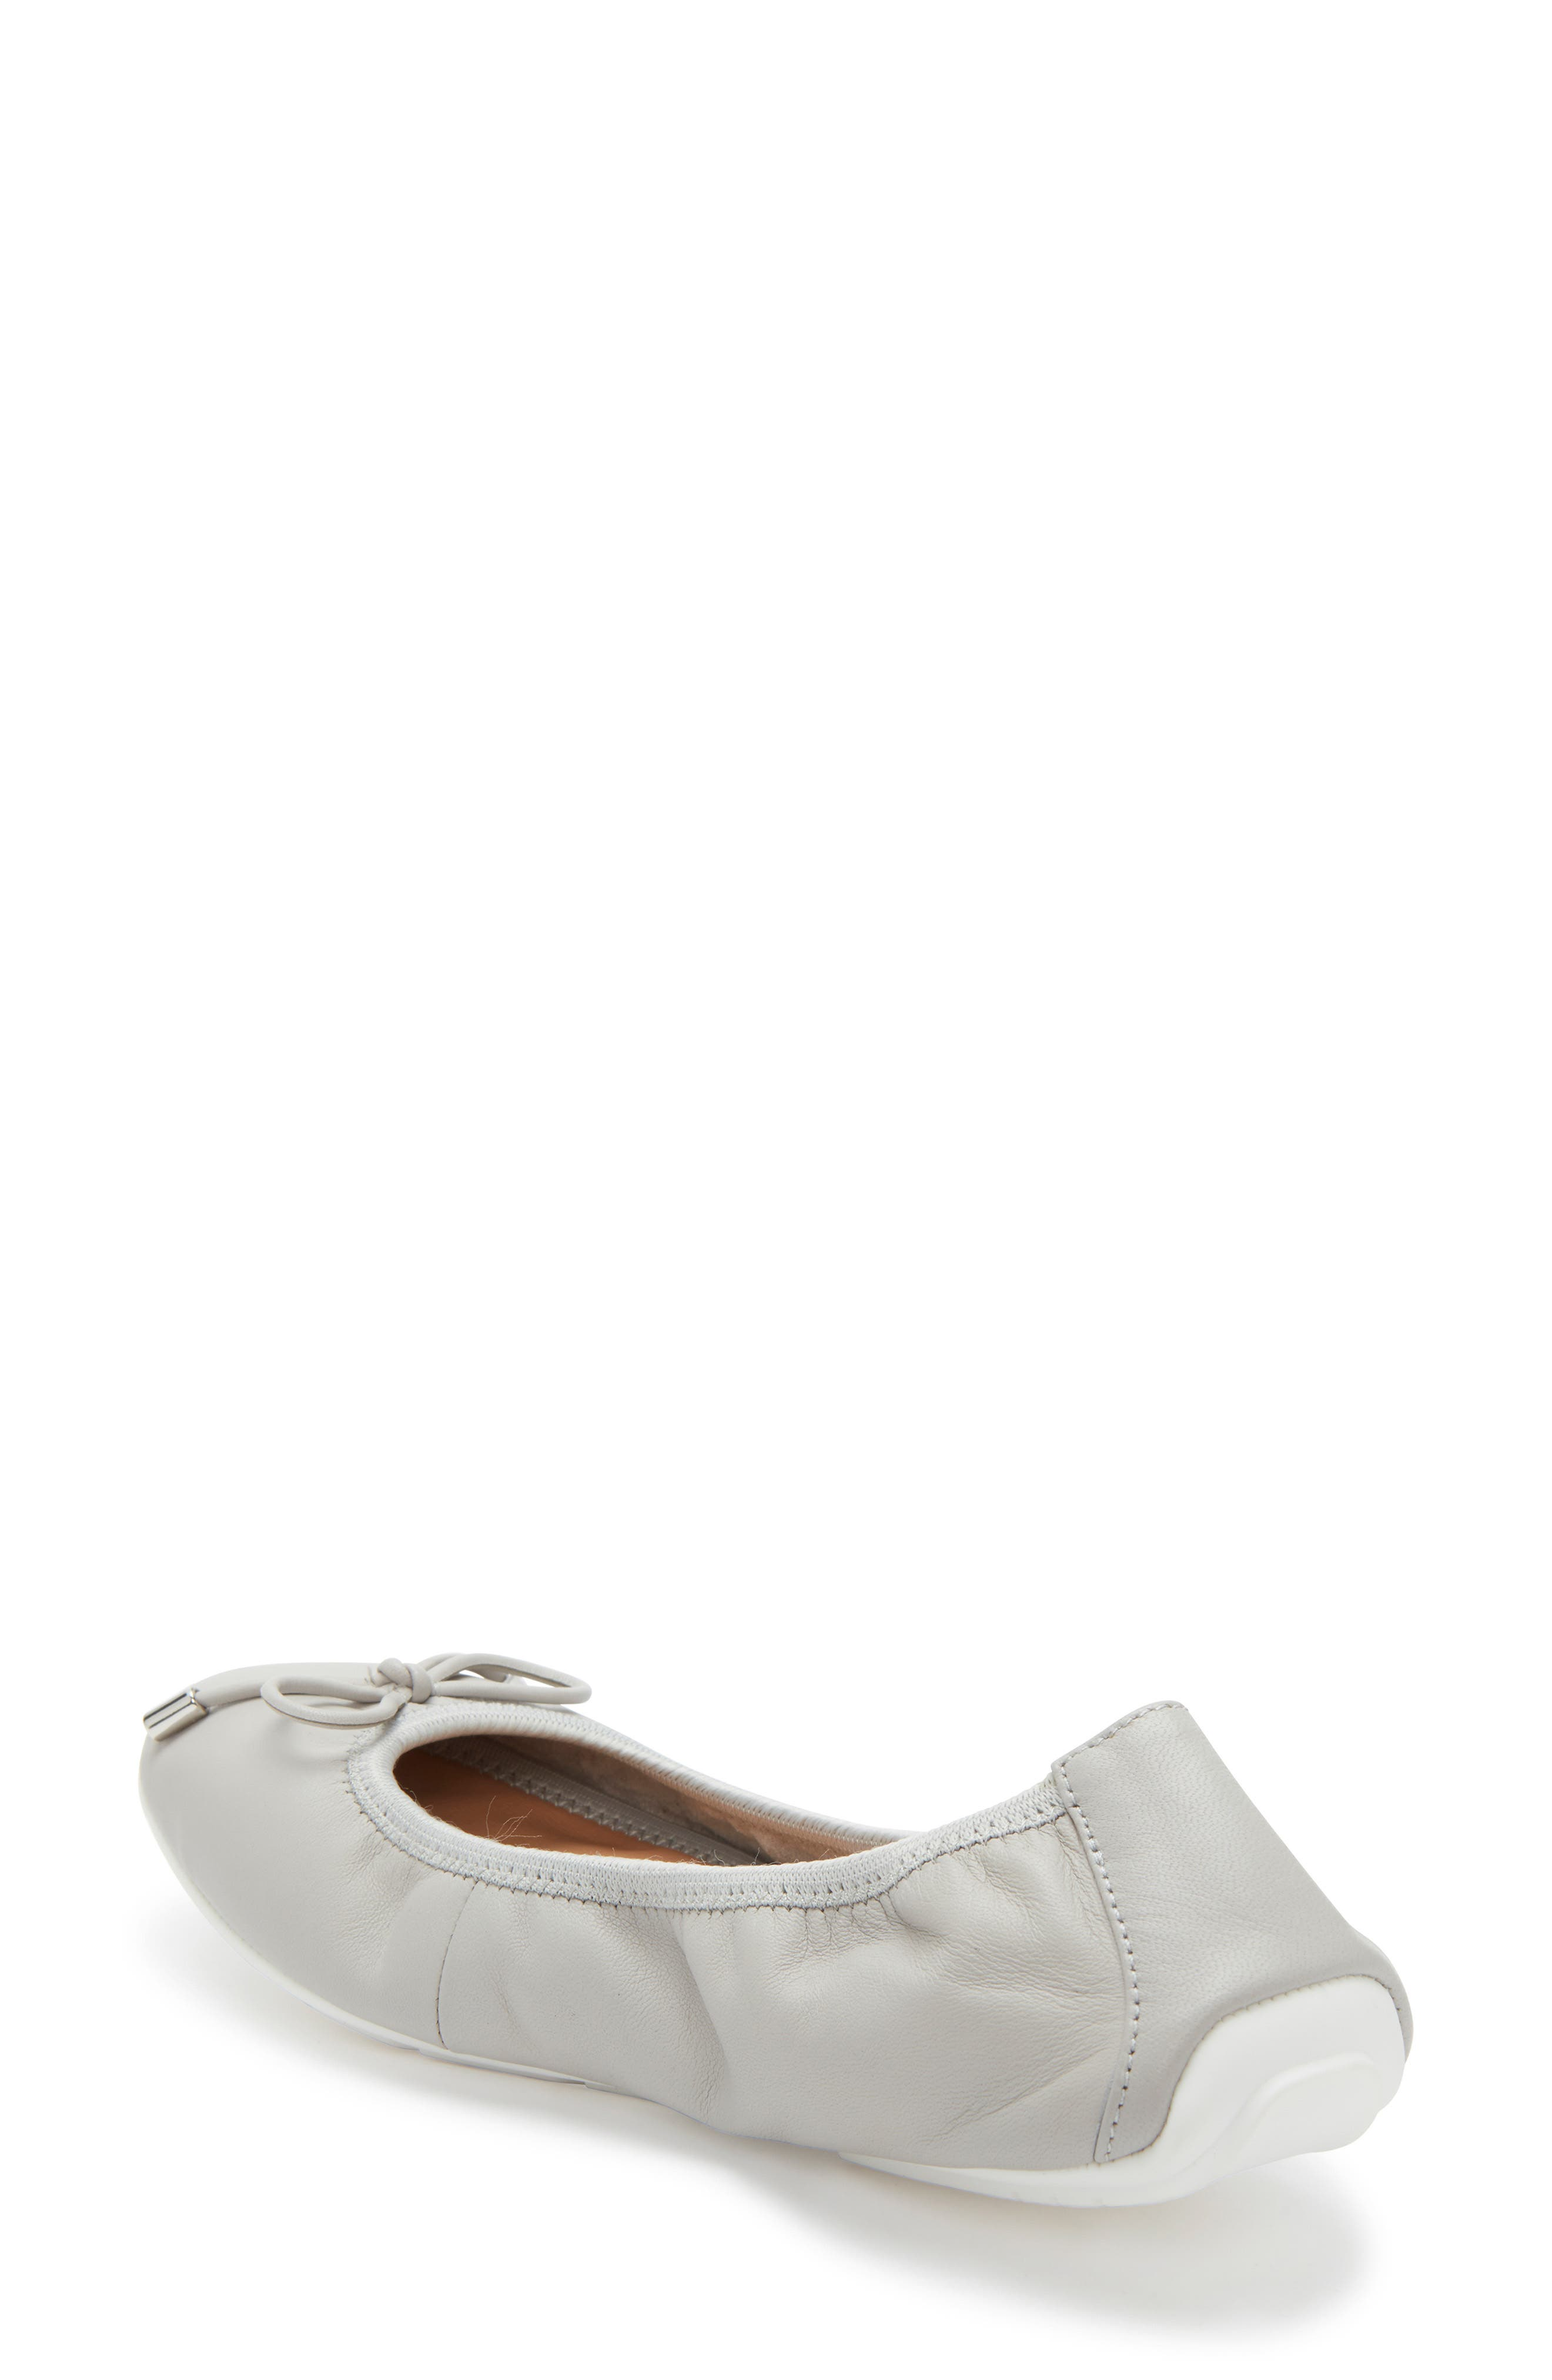 ME TOO, 'Halle 2.0' Ballet Flat, Alternate thumbnail 2, color, LIGHT GREY LEATHER